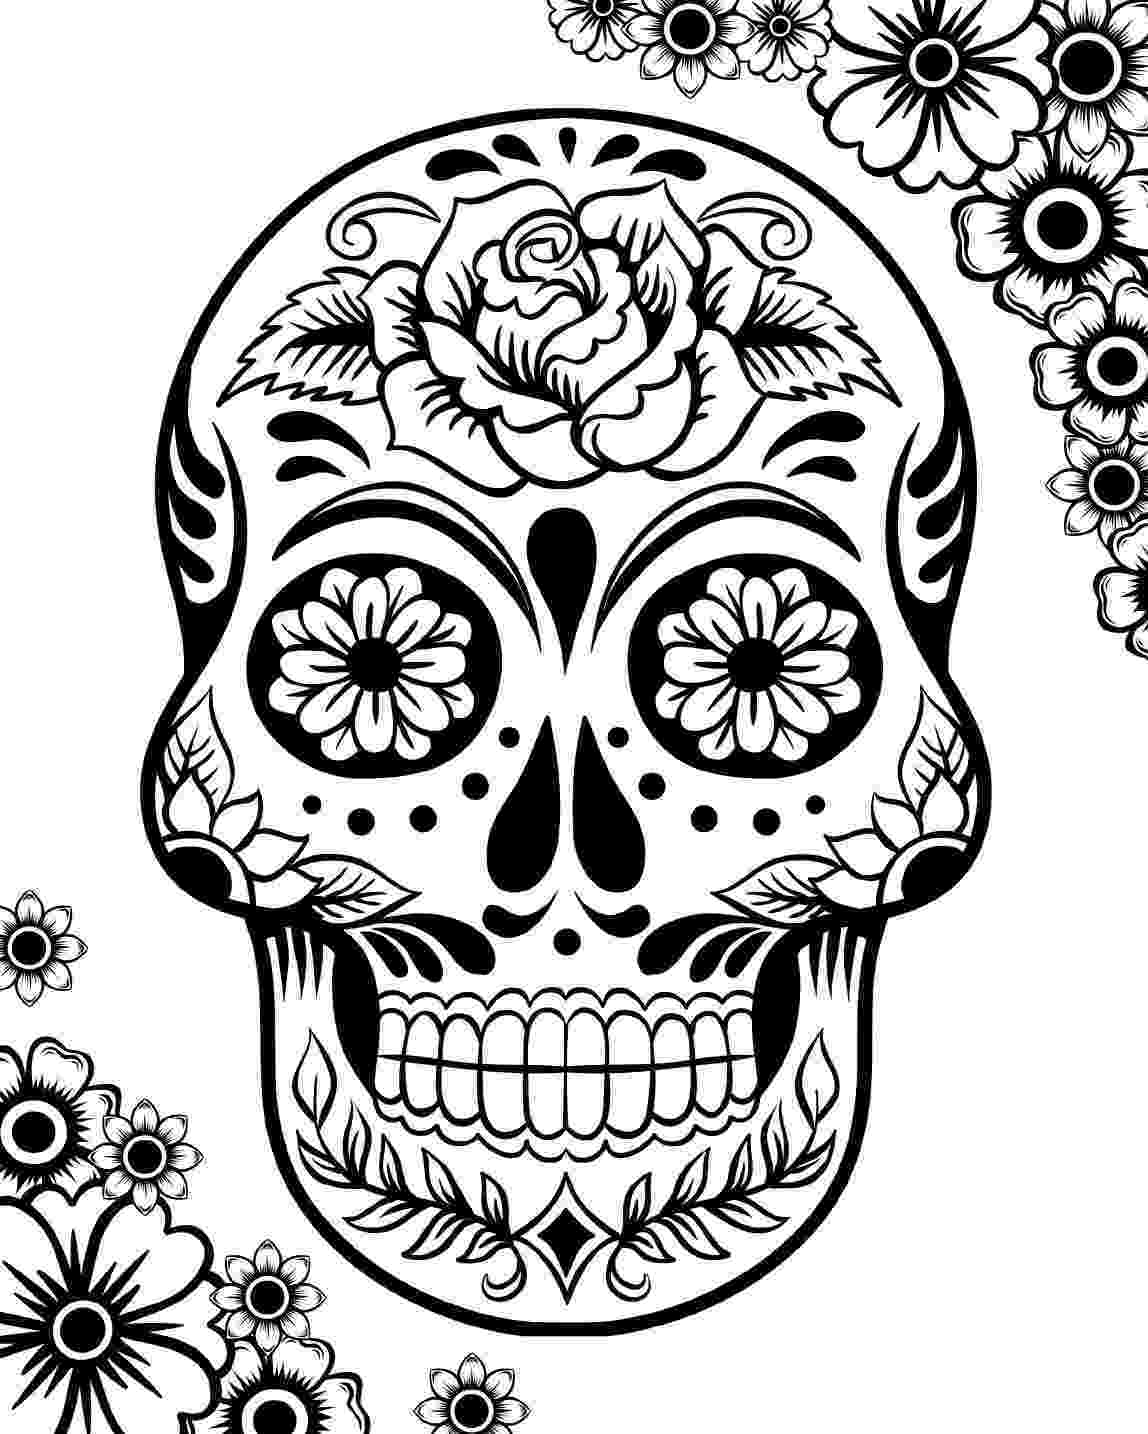 day of dead coloring pages 10 more sugar skull day of the dead original art coloring book coloring of pages day dead